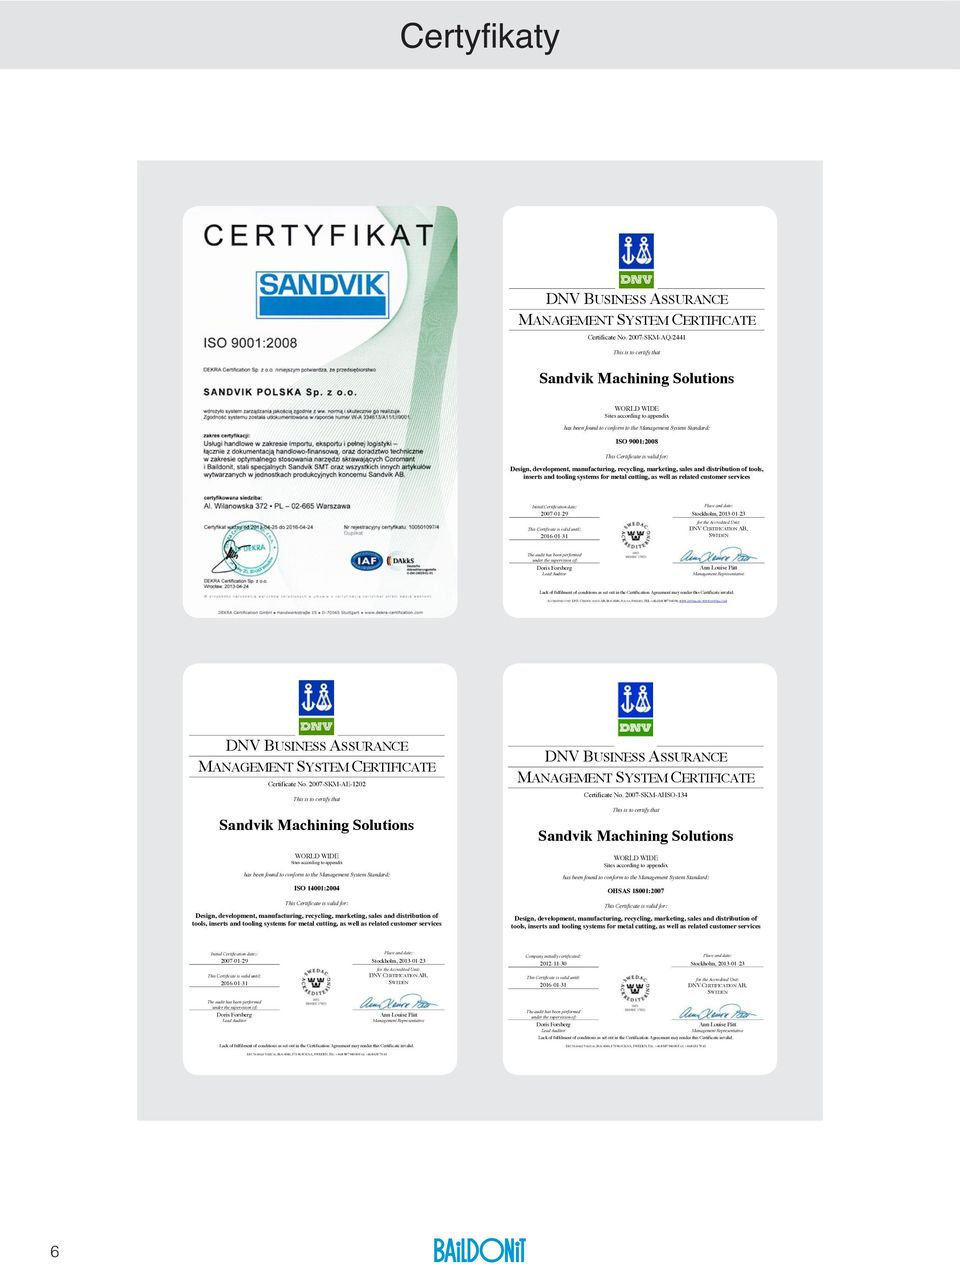 Design, deveopent, anufacturing, recycing, arketing, saes and distriution of toos, inserts and tooing systes for eta cutting, as we as reated custoer services Initia Certification date: 2007029 Tis